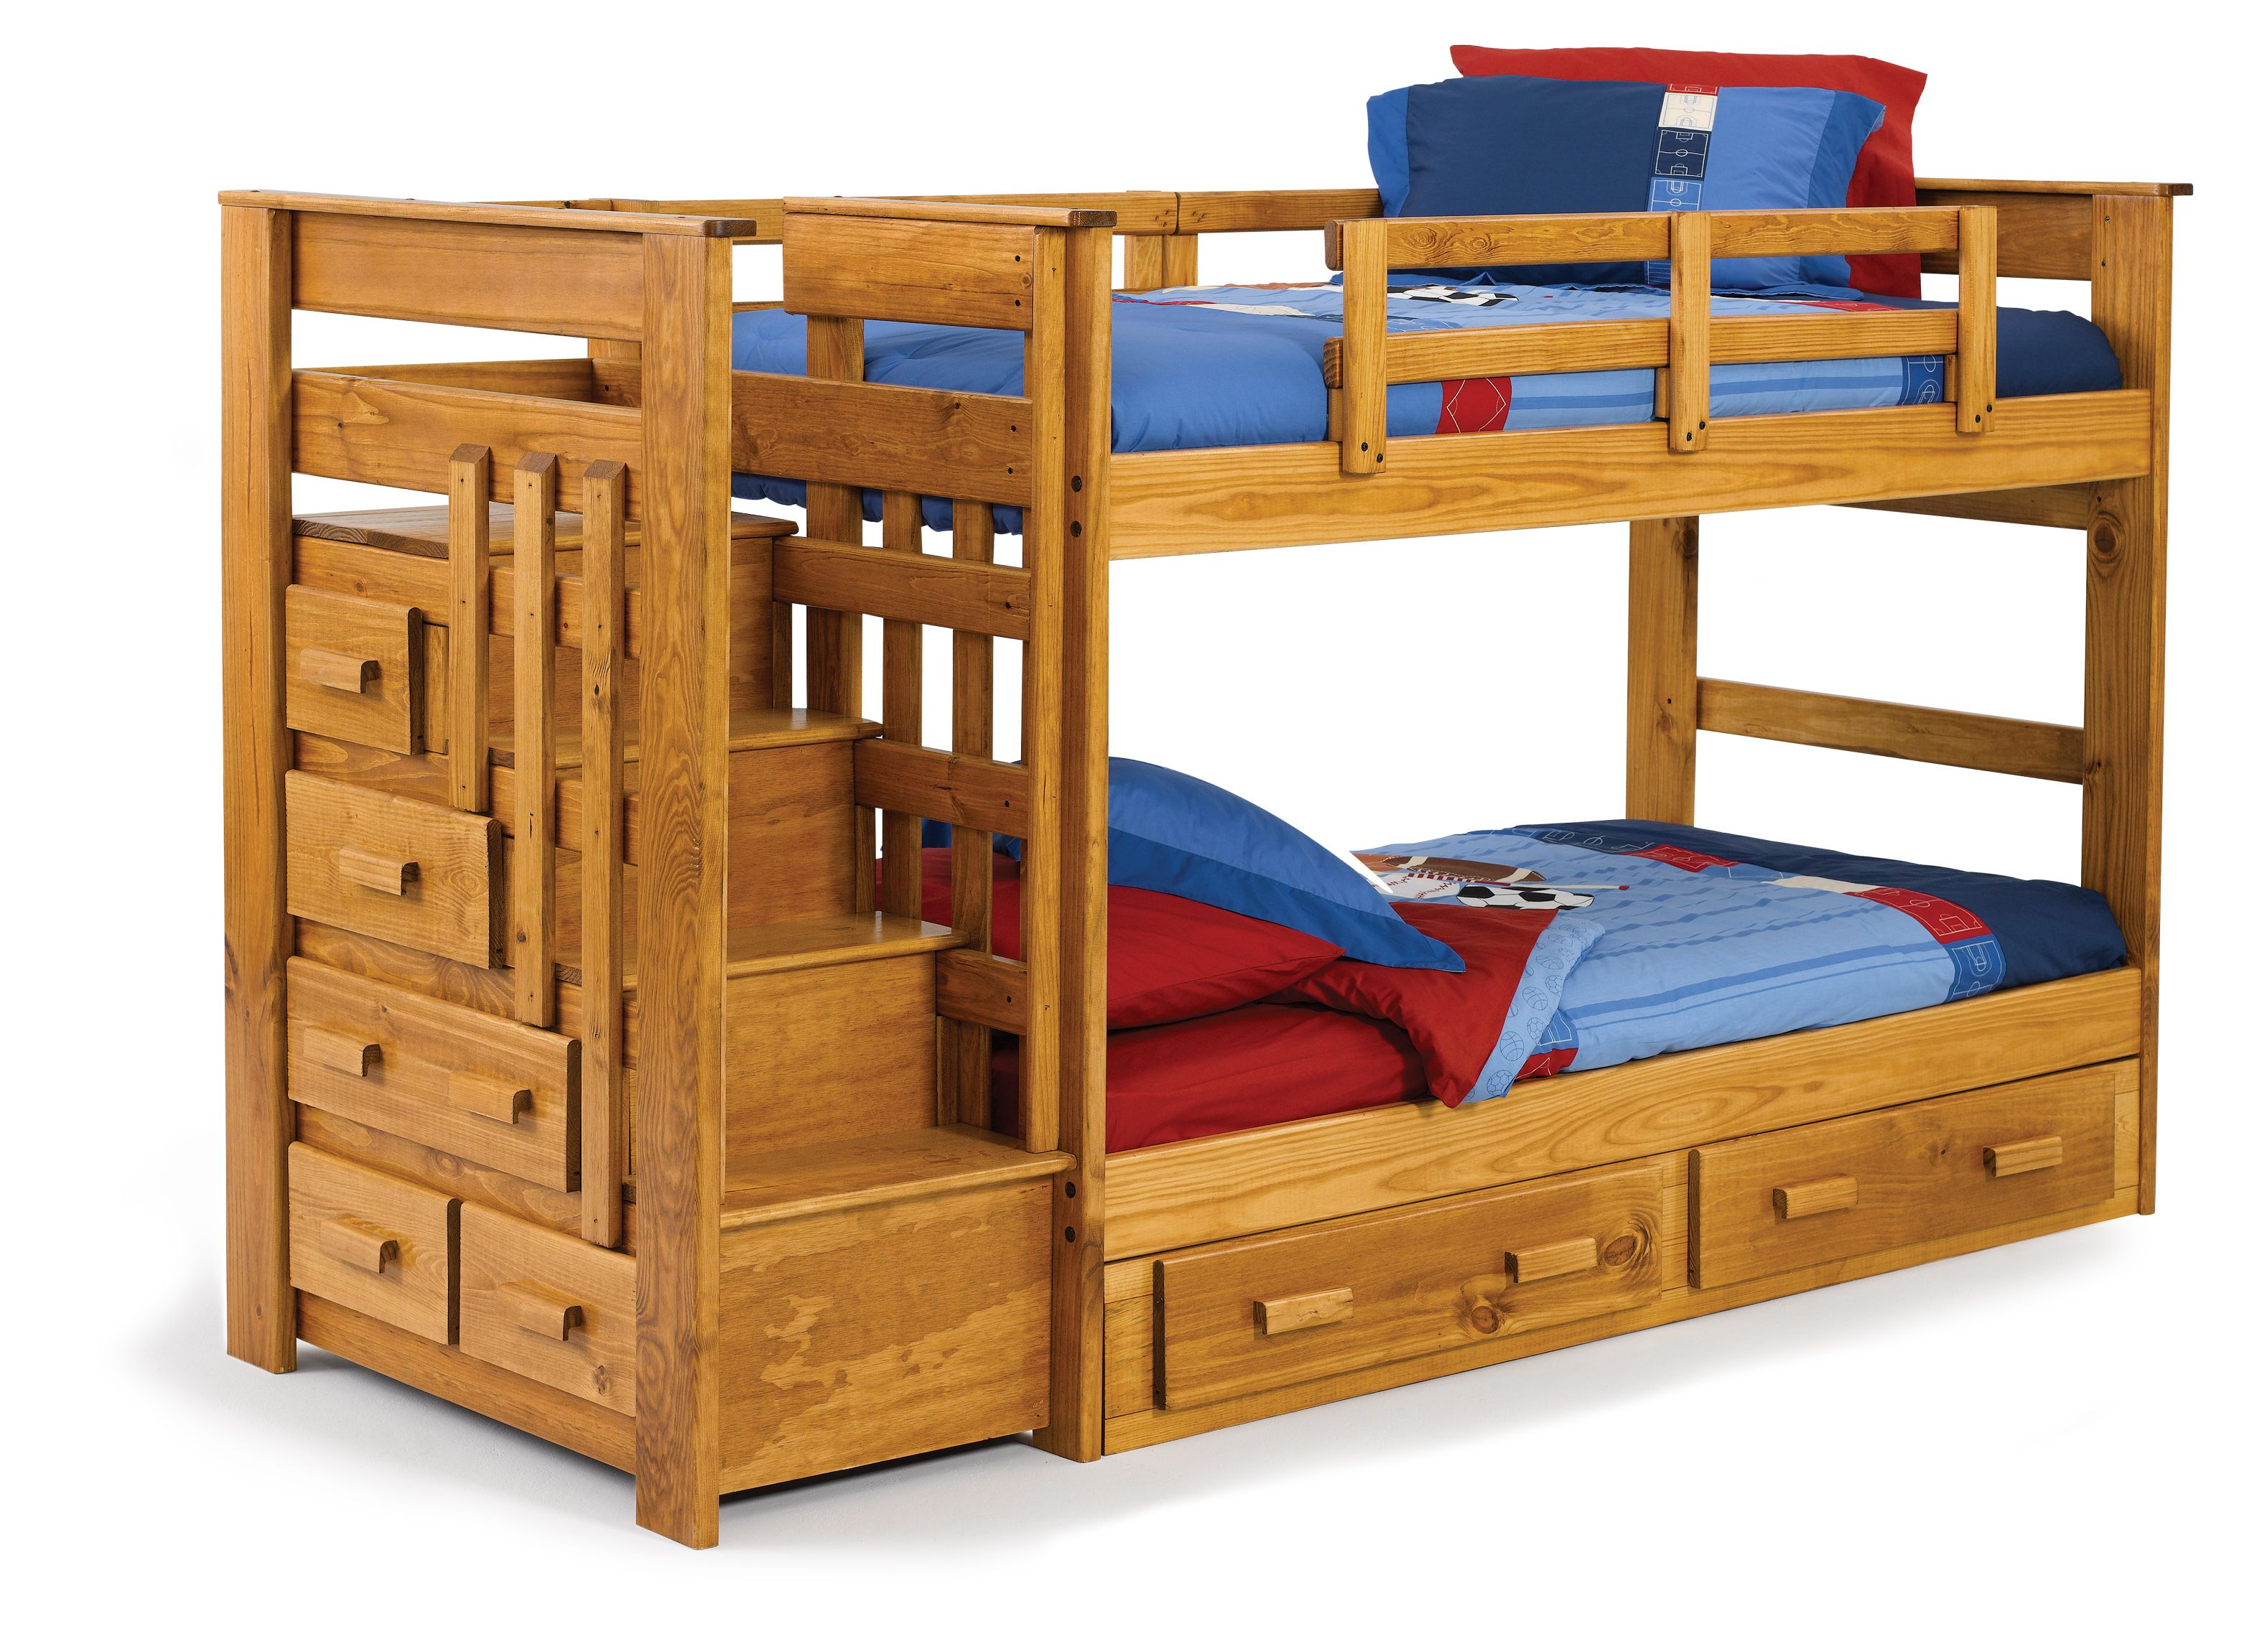 Best Lovable Kids Children Furnitures Set With Natural Wooden 400 x 300